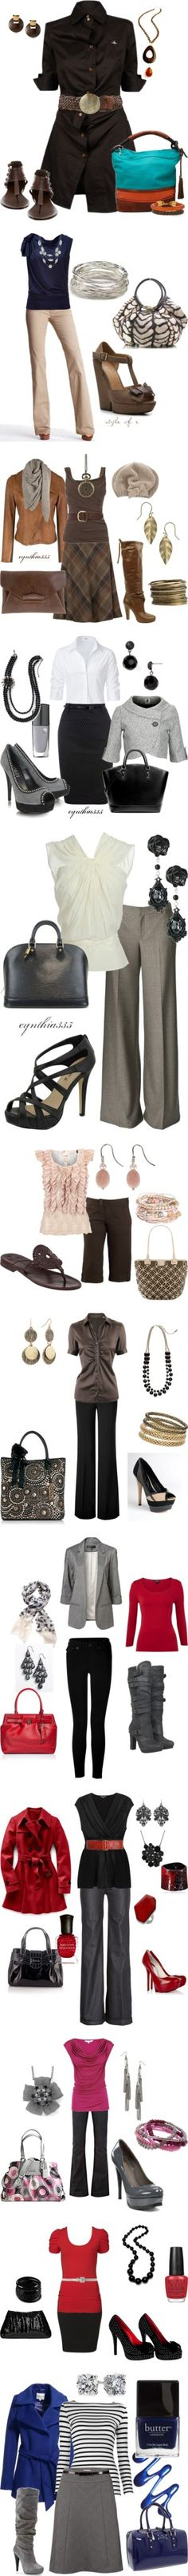 """""""Work clothes"""" by mfurlong on Polyvore"""